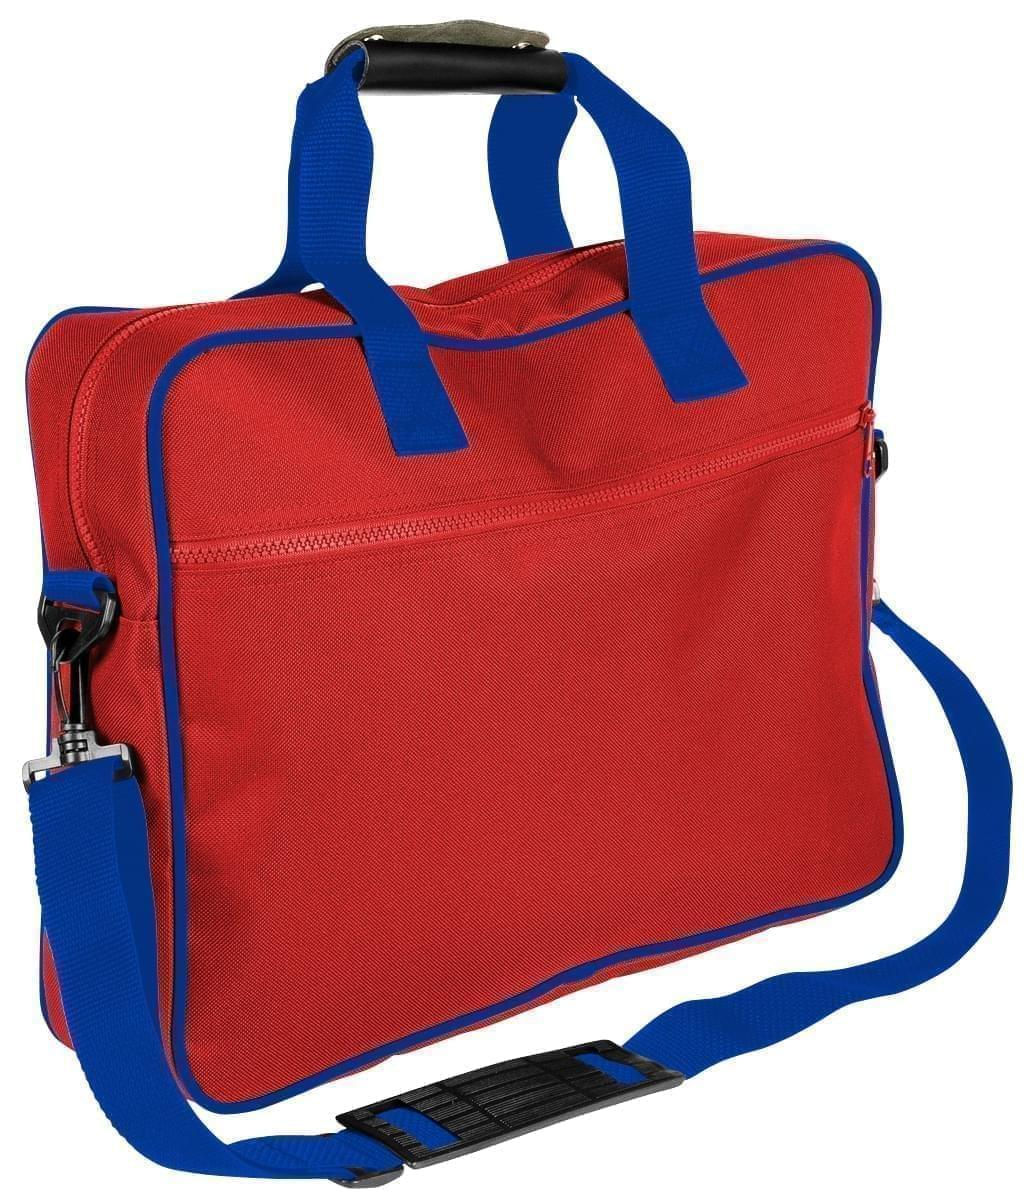 USA Made Nylon Poly Notebook Sleeves, Red-Royal Blue, CPKVA59PZ3